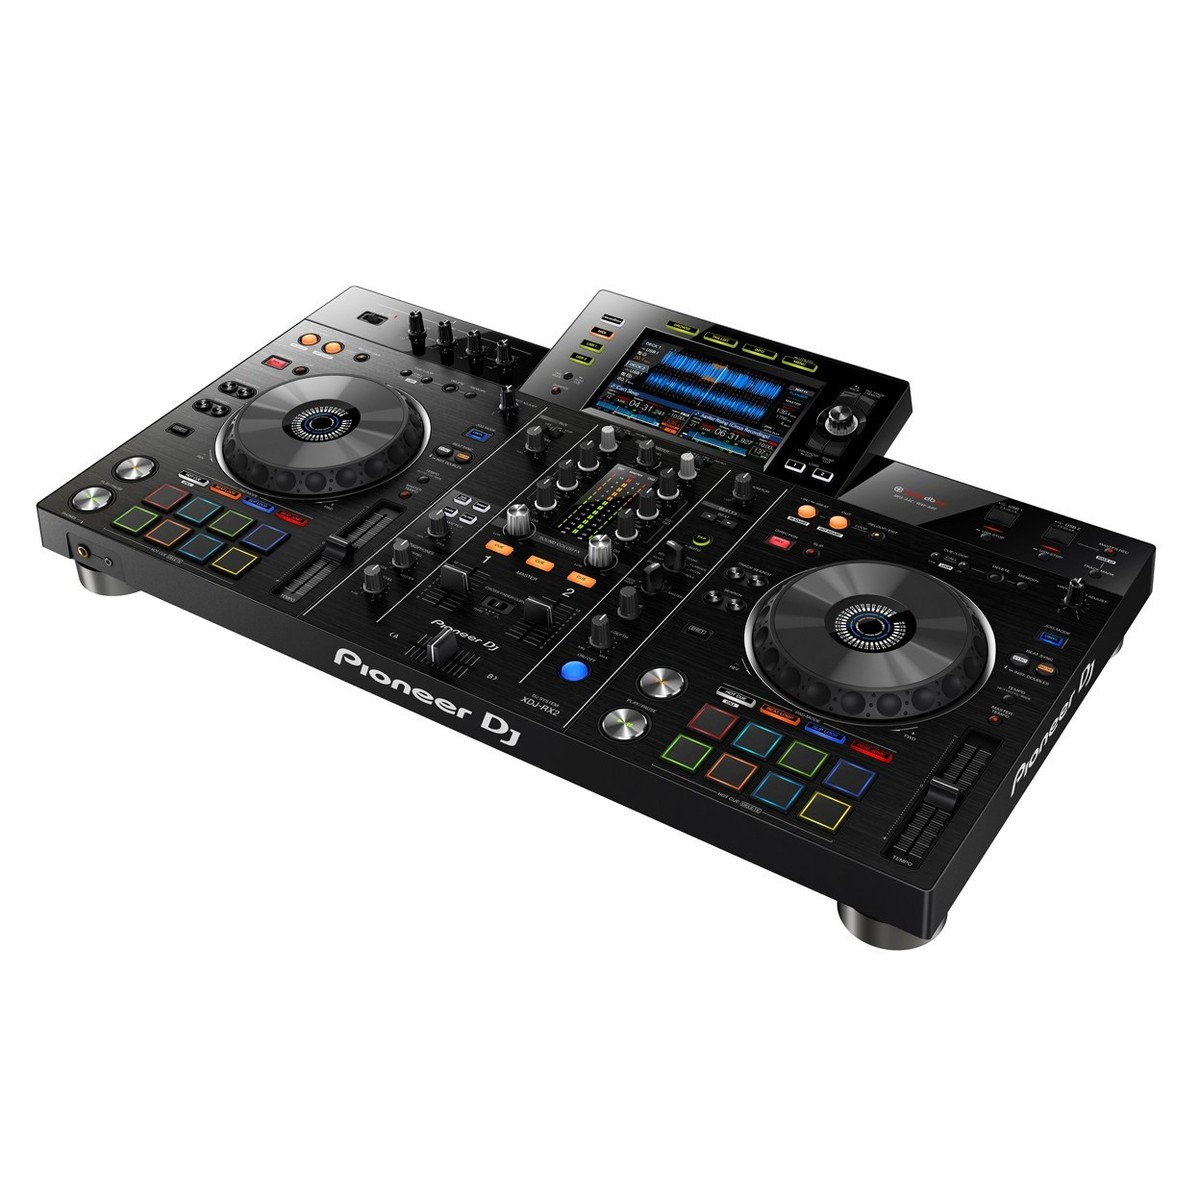 Mesa De Dj Pioneer Pioneer Dj Xdj Rx2 All In One Dj Controller At Gear4music